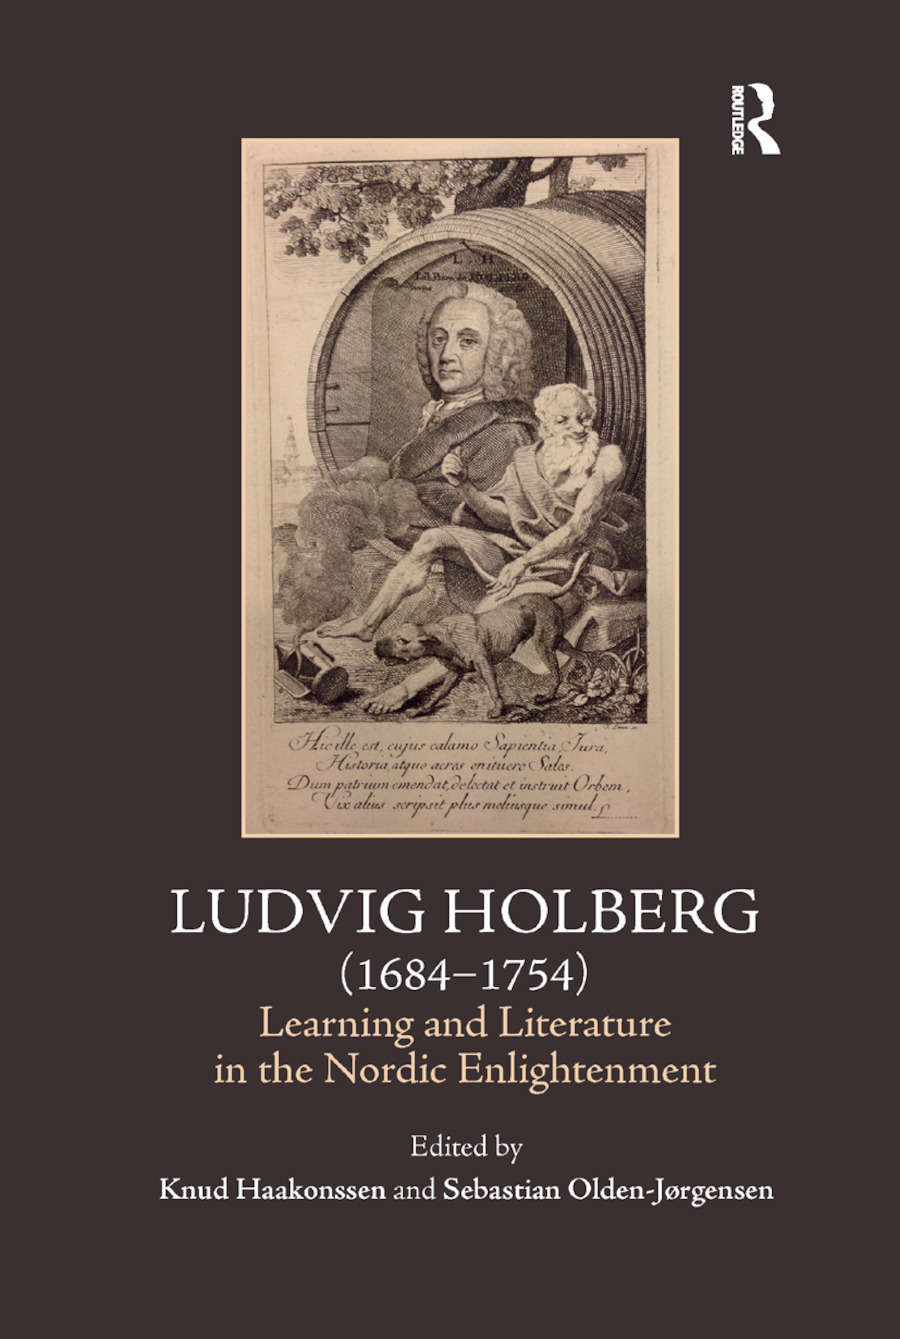 Ludvig Holberg (1684-1754): Learning and Literature in the Nordic Enlightenment book cover